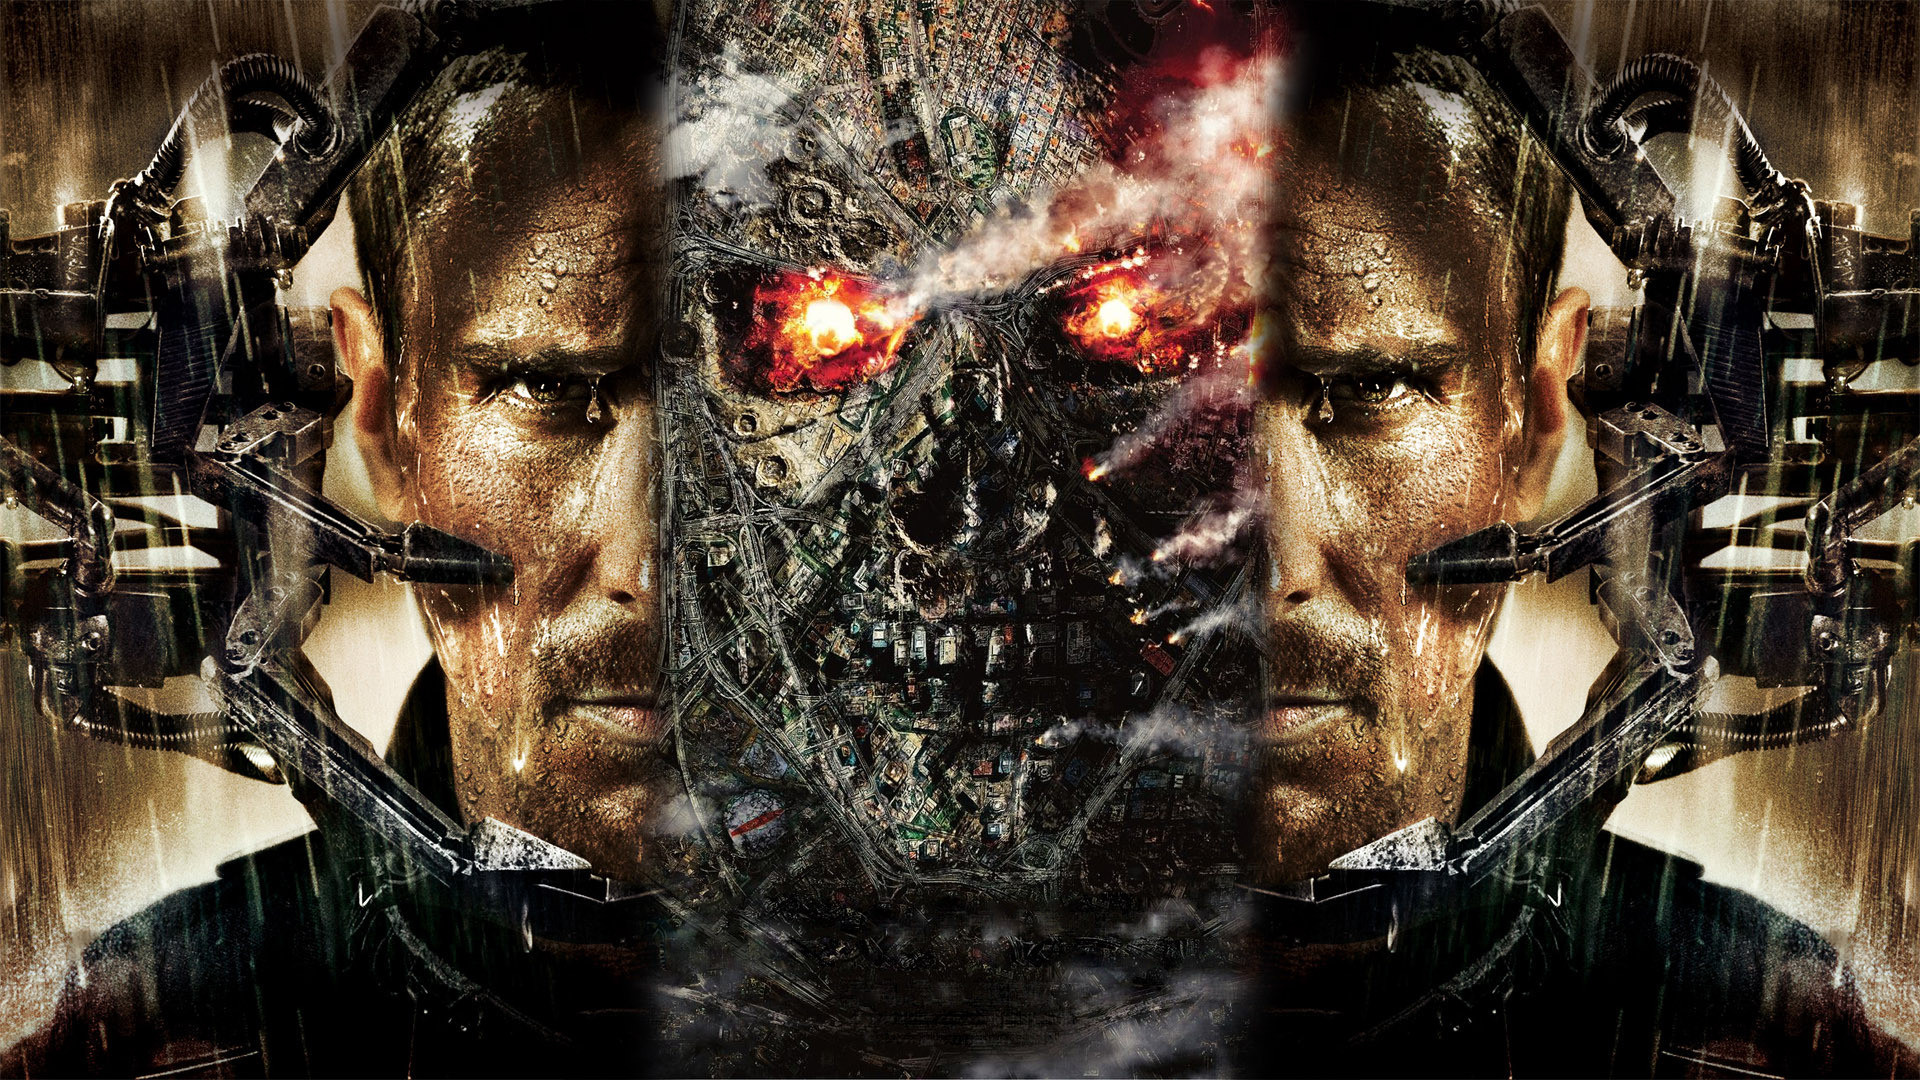 TERMINATOR SALVATION cyborg a wallpaper | 1920x1080 ...